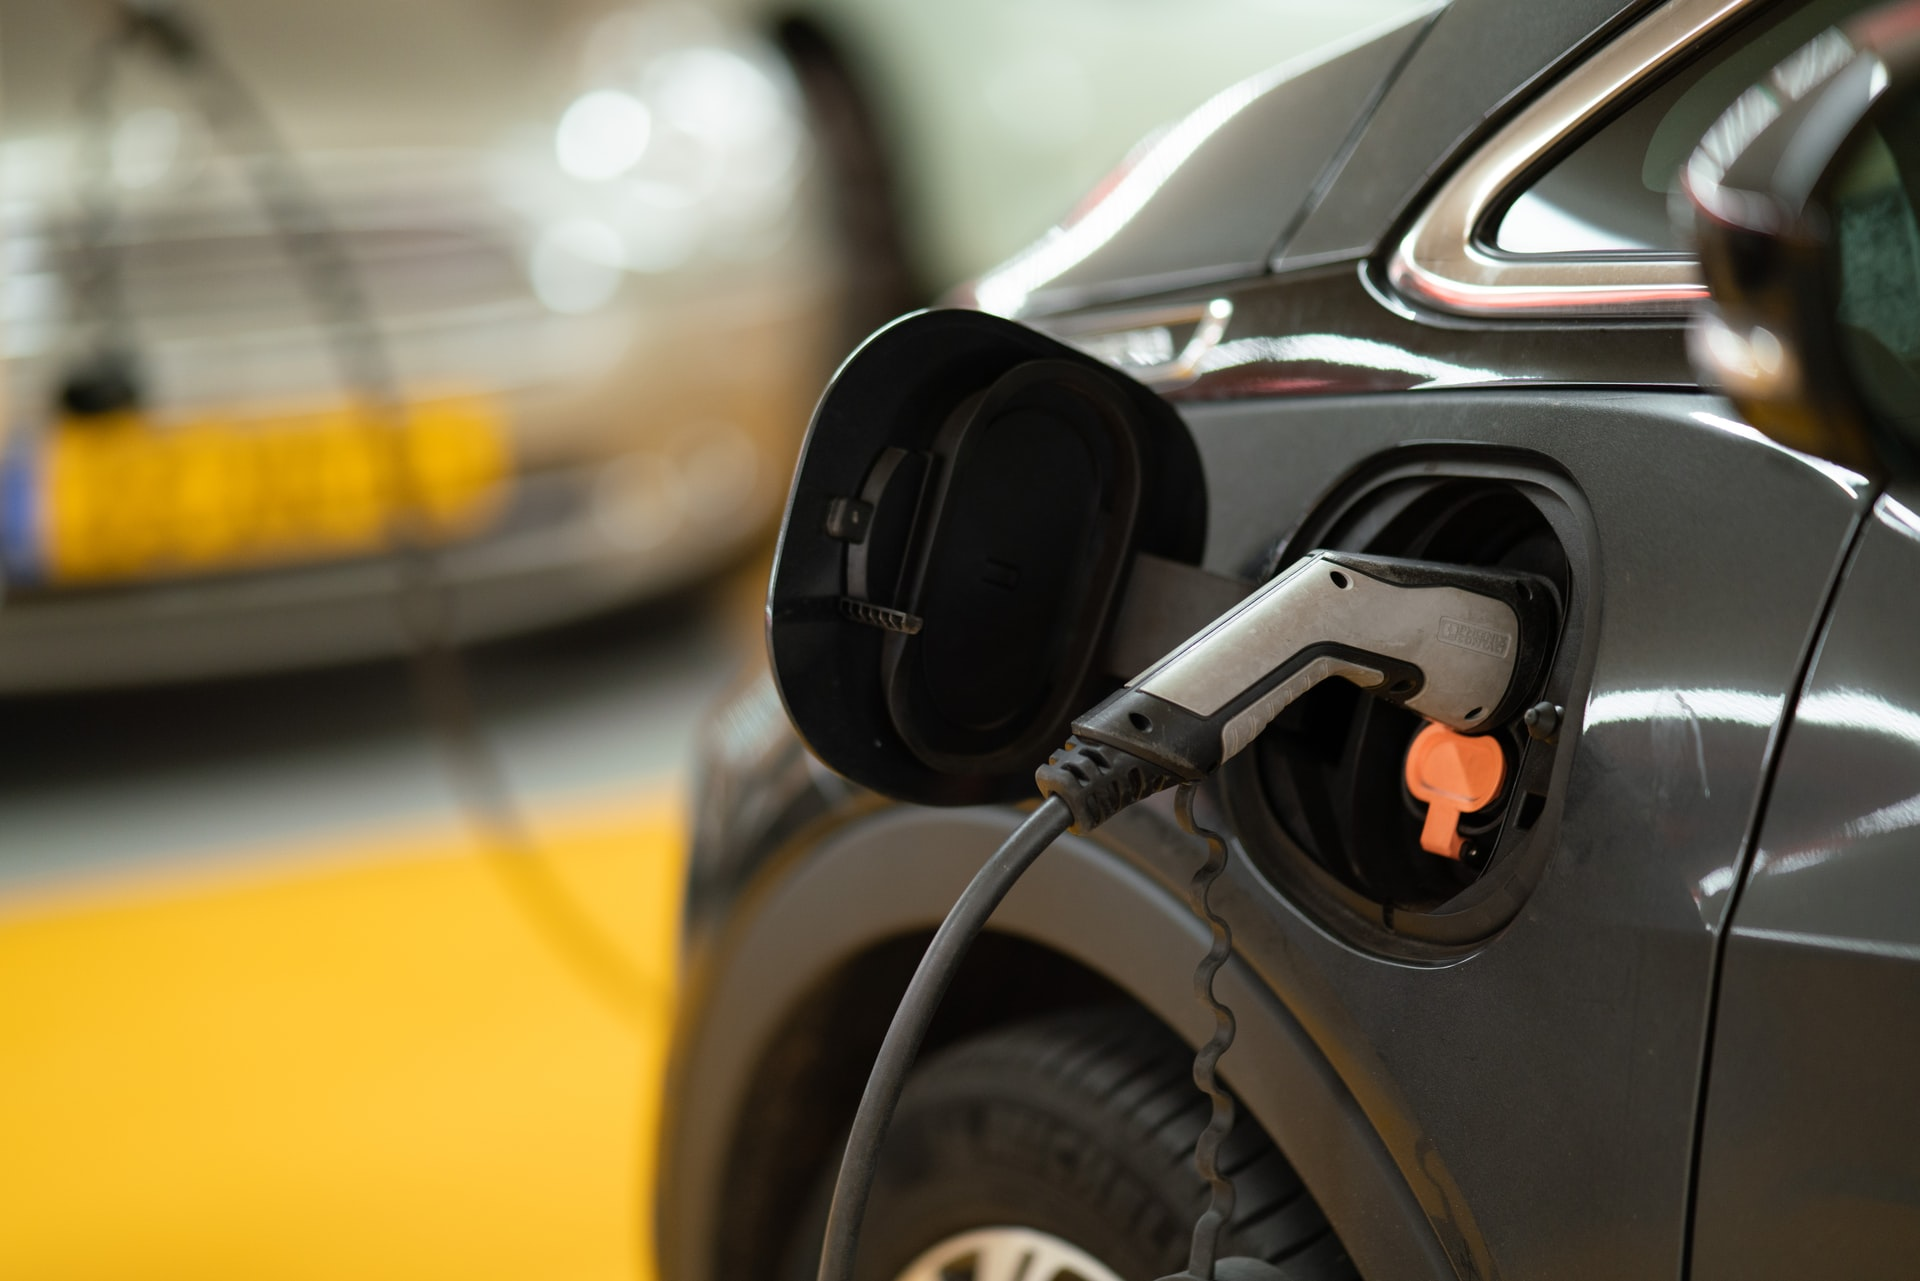 NSW announces incentives to promote electric vehicle purchases